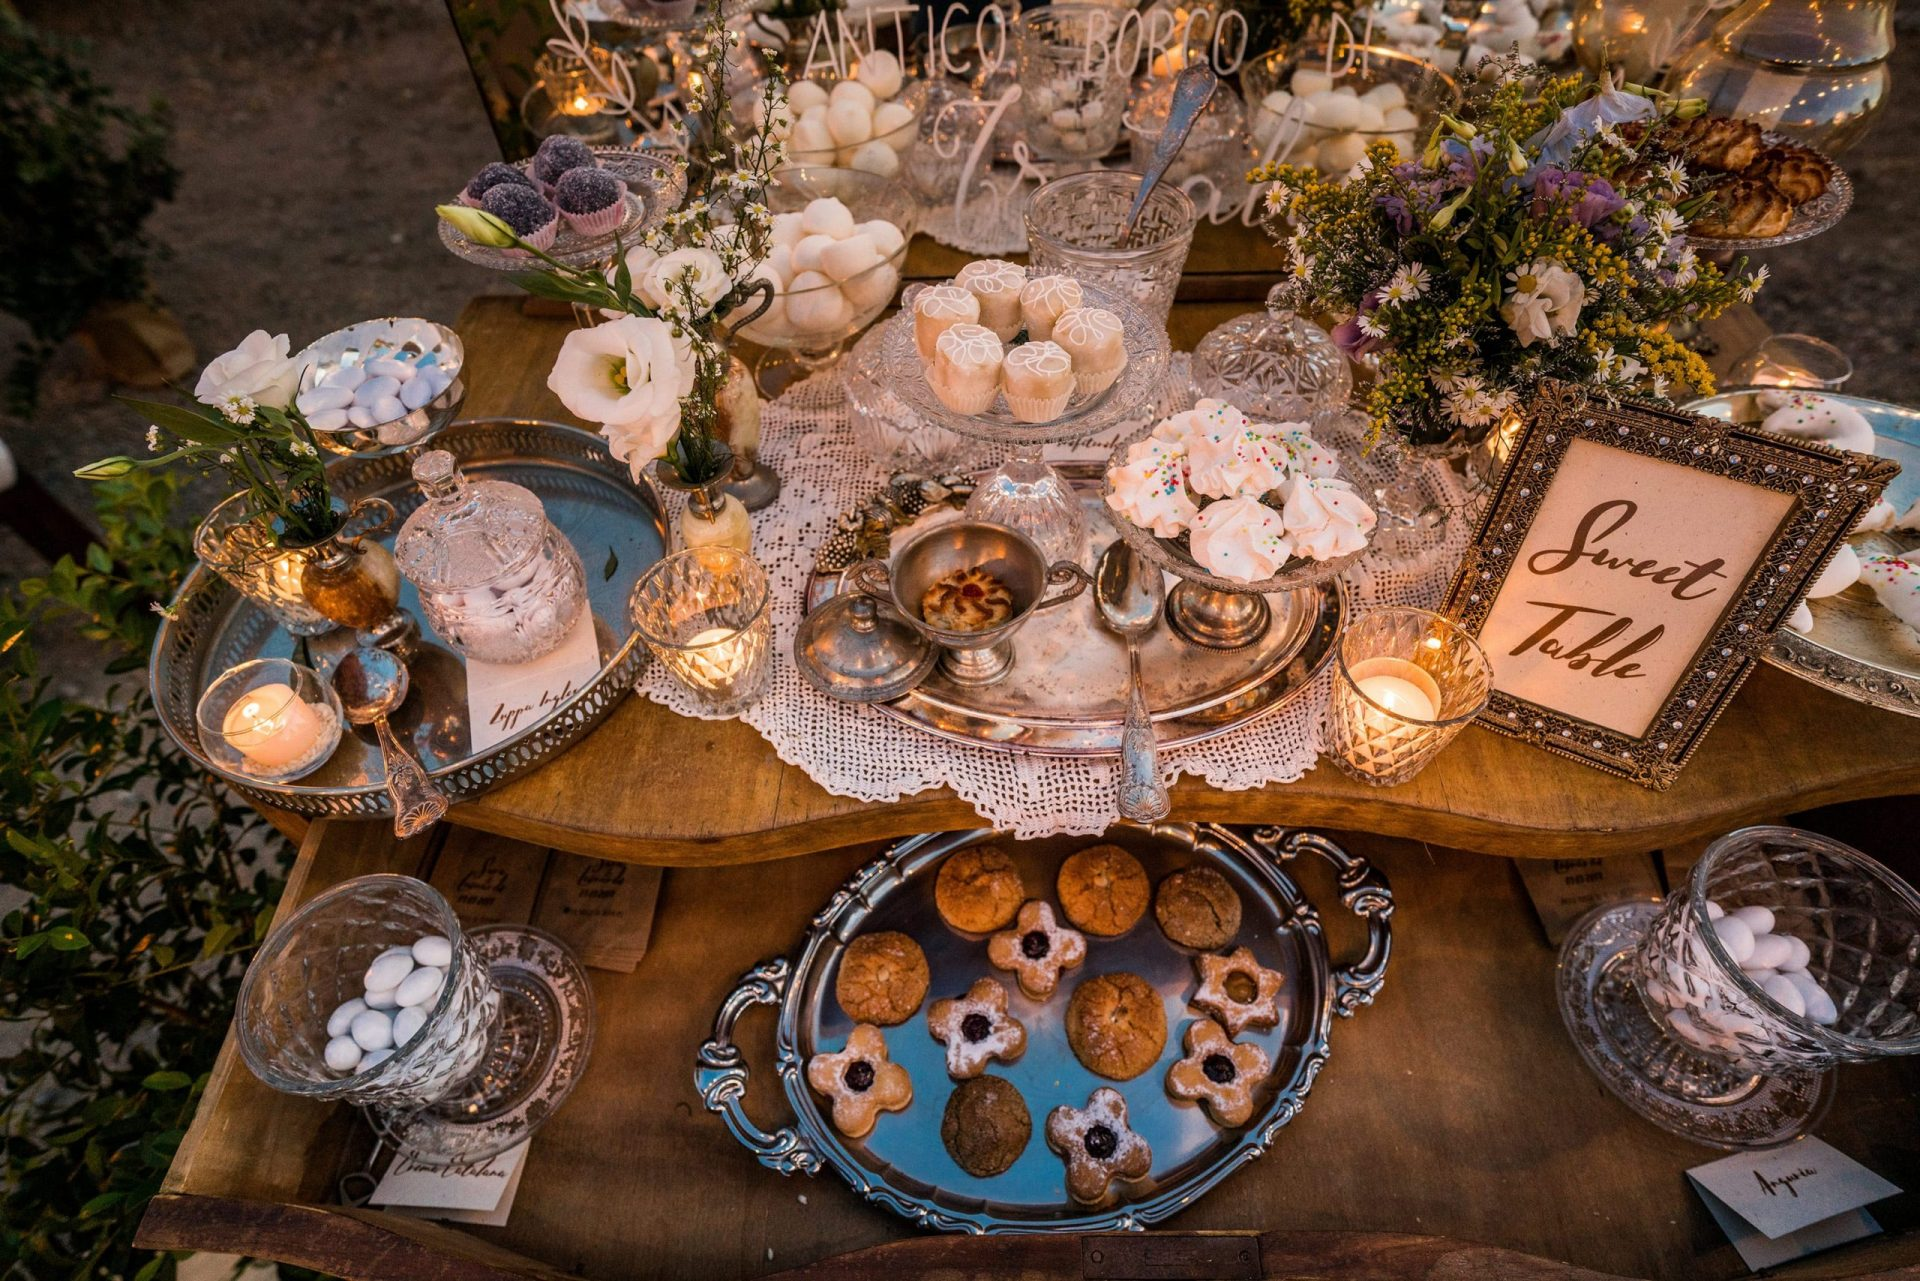 Sara and Leonardo, vintage italian style sweet table